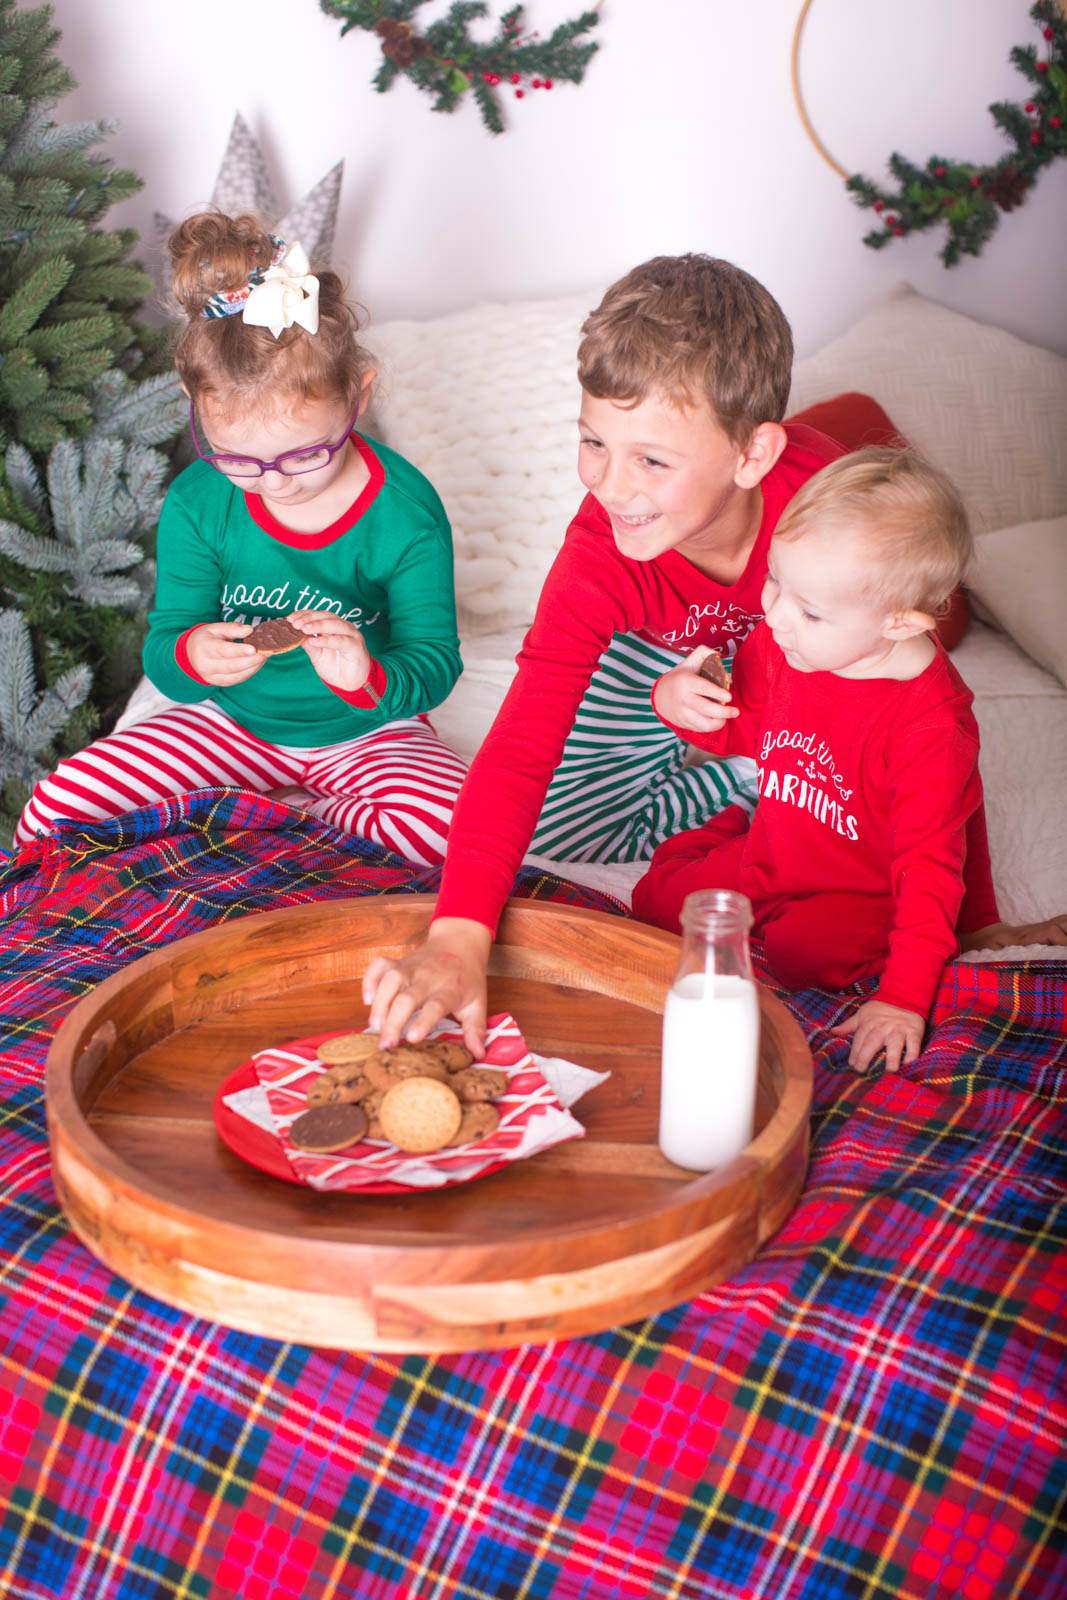 Image of 3 children eating cookies during Christmas milk and cookies session